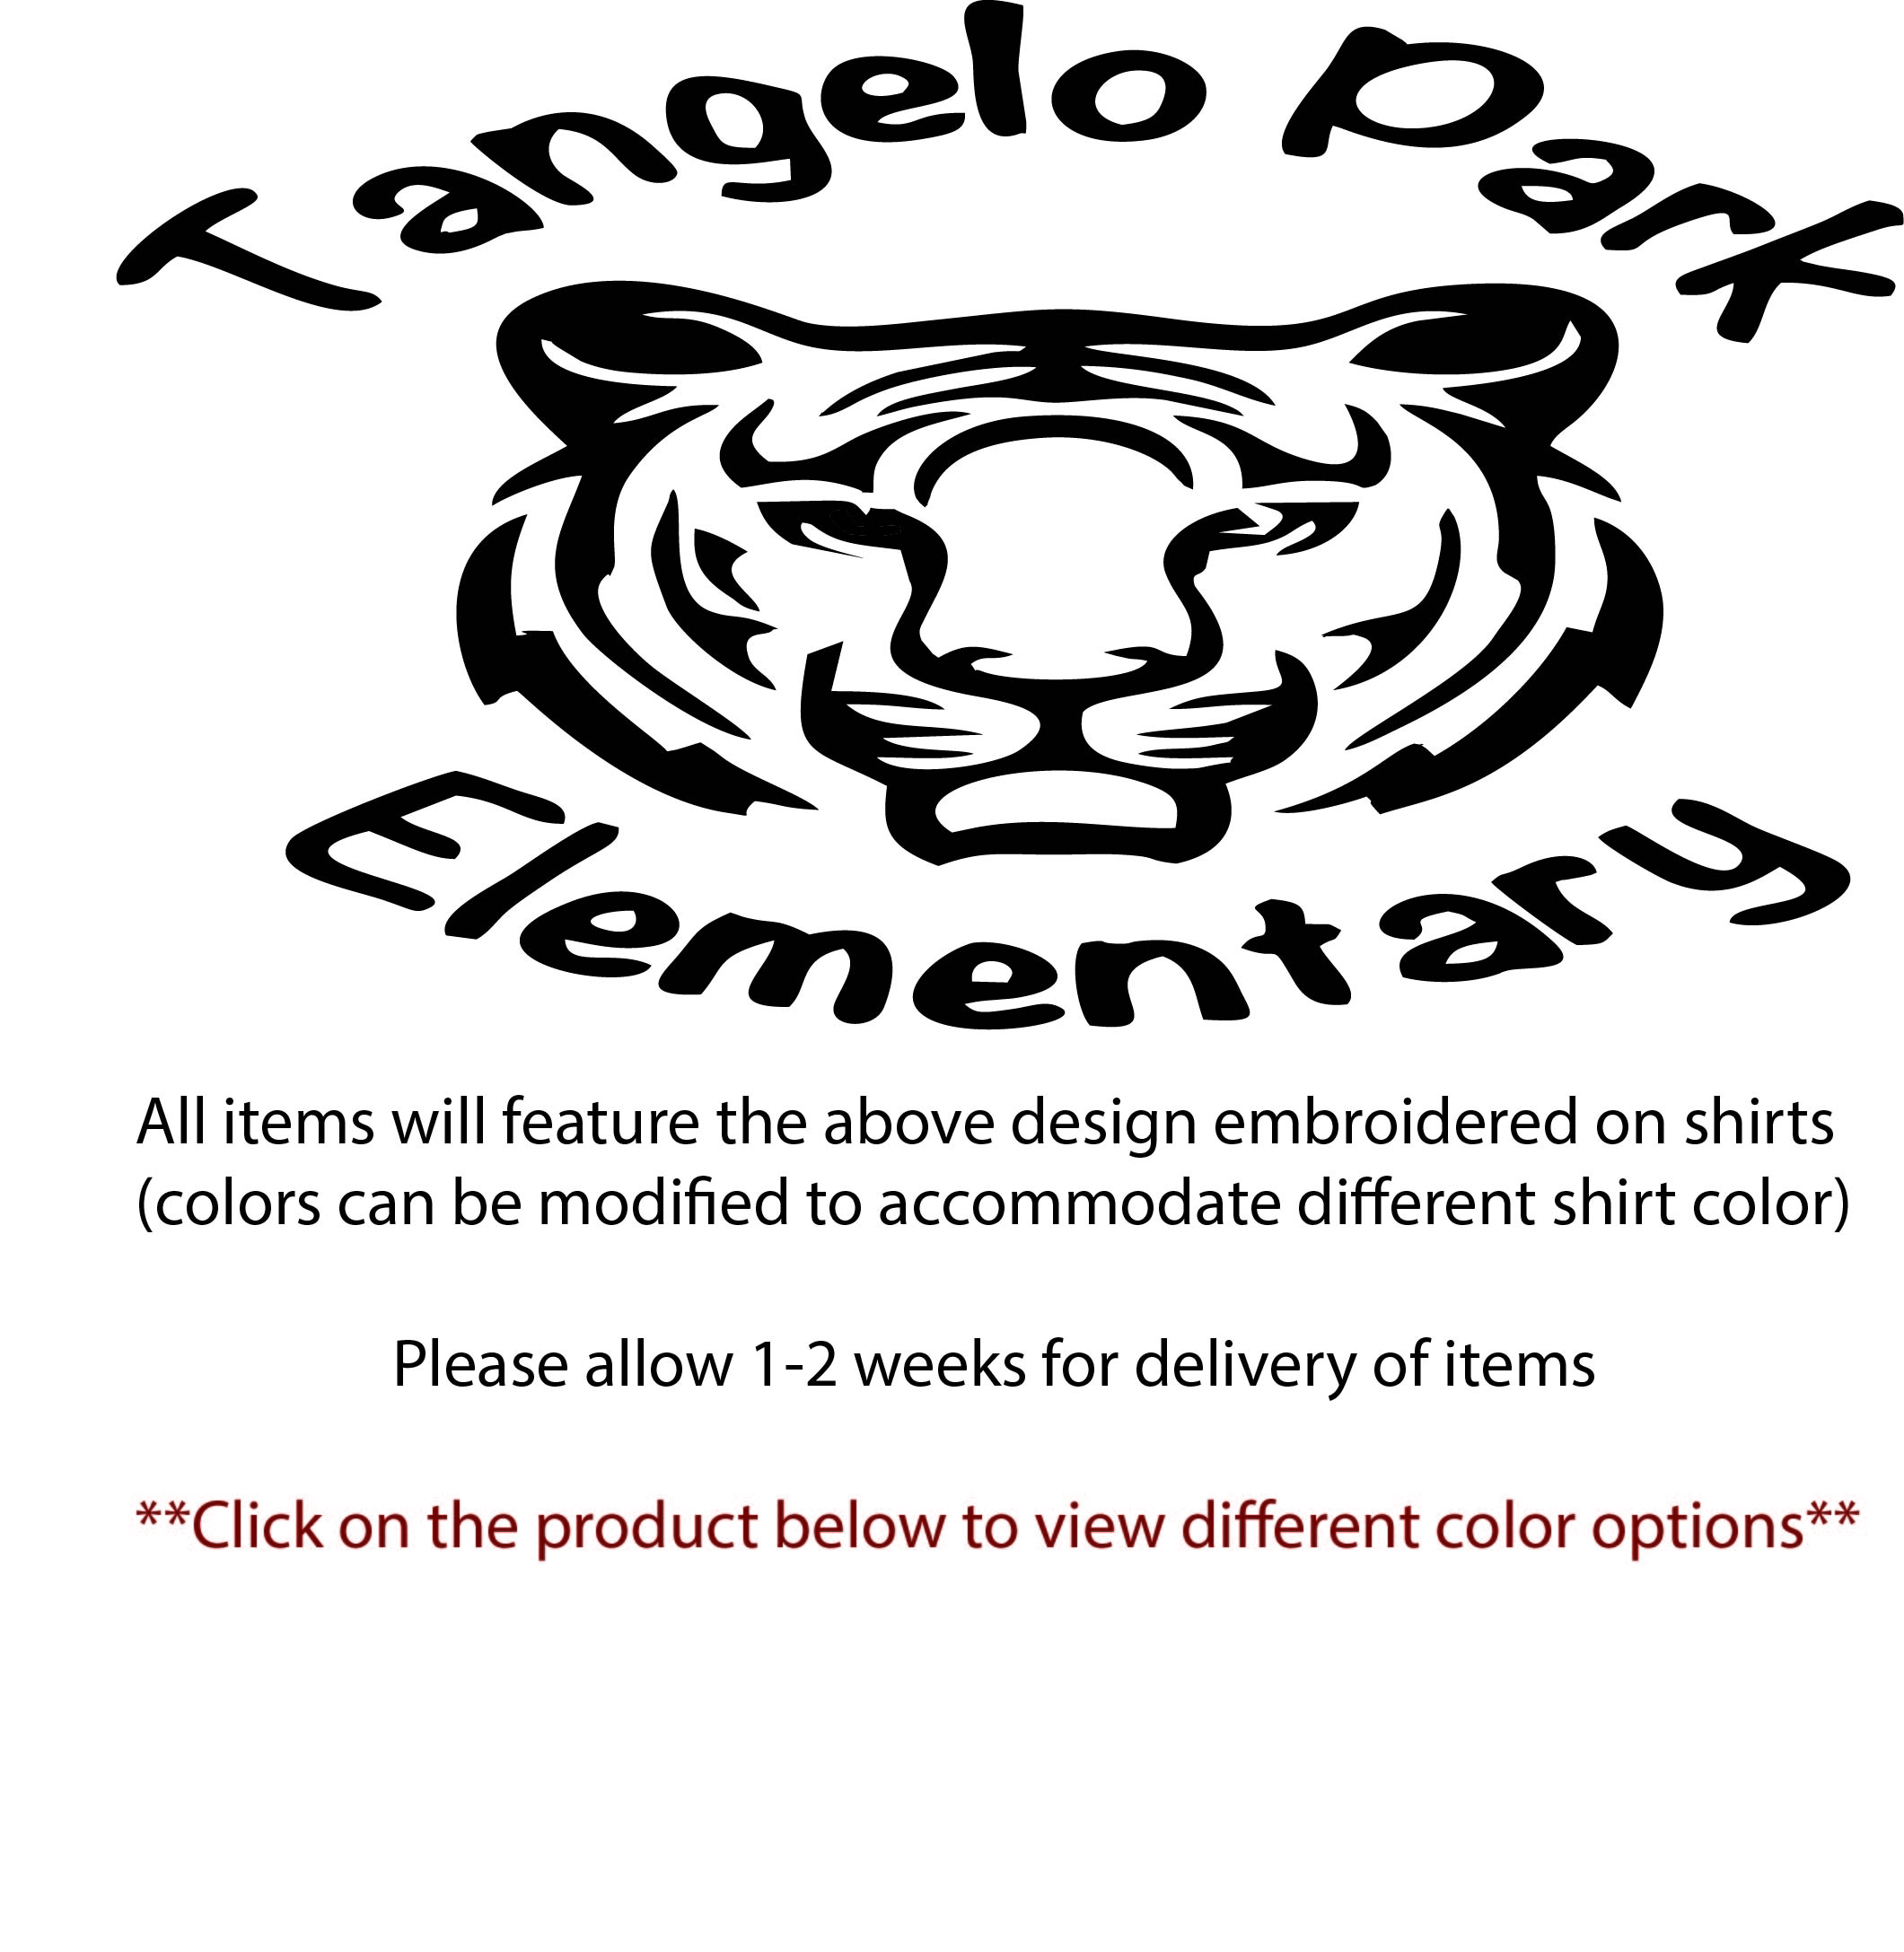 tangelo-park-web-site-header-staff.jpg